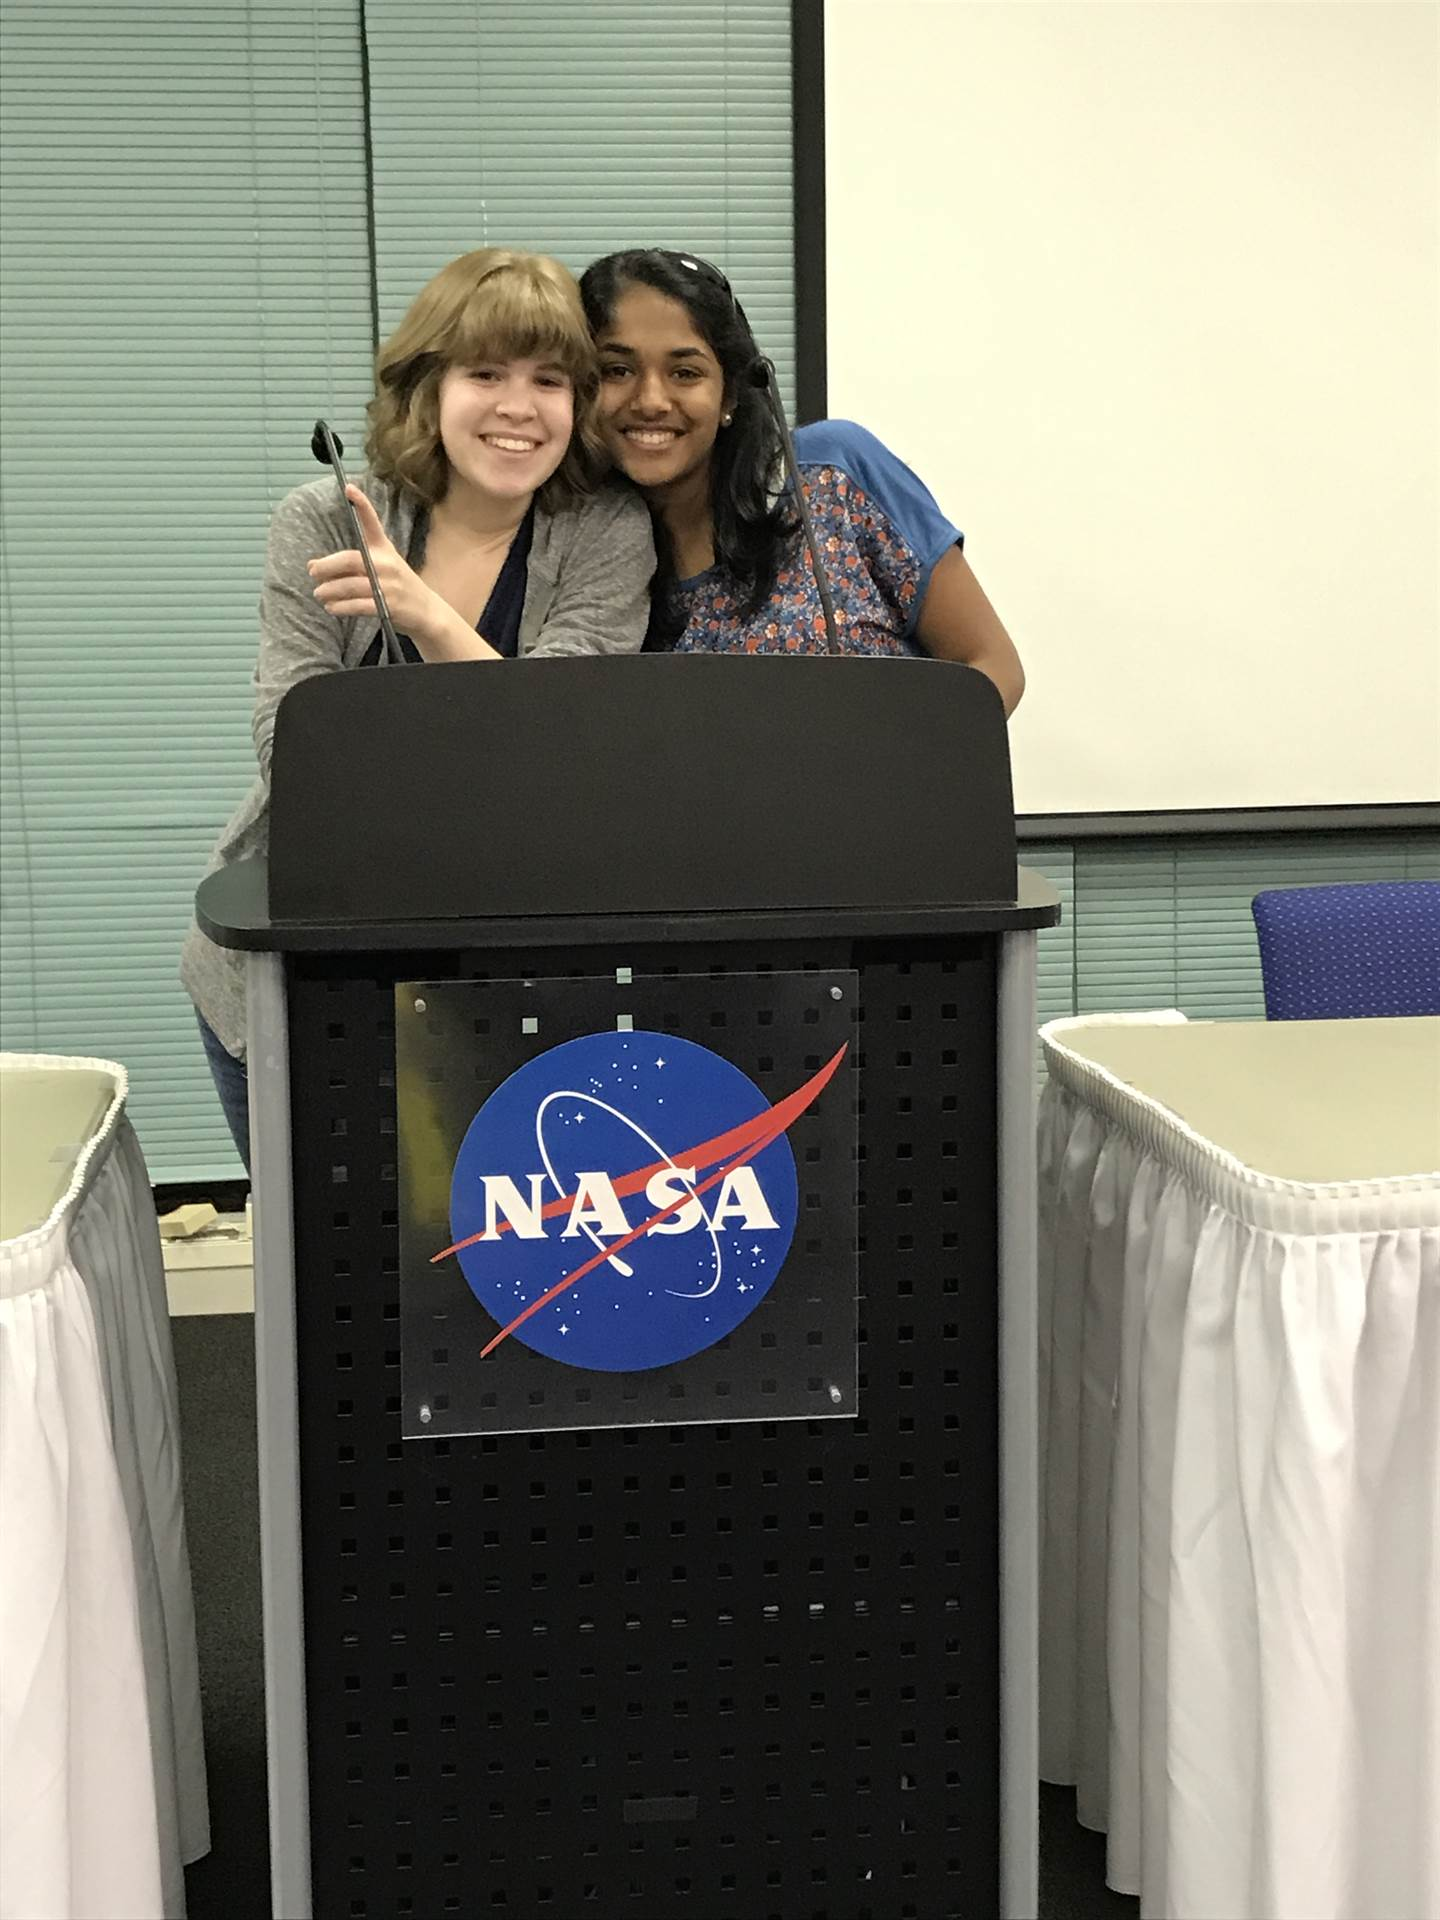 Delina and Pragati set up @ NASA SSERVI Exploration Science Forum @ Ames Research Center